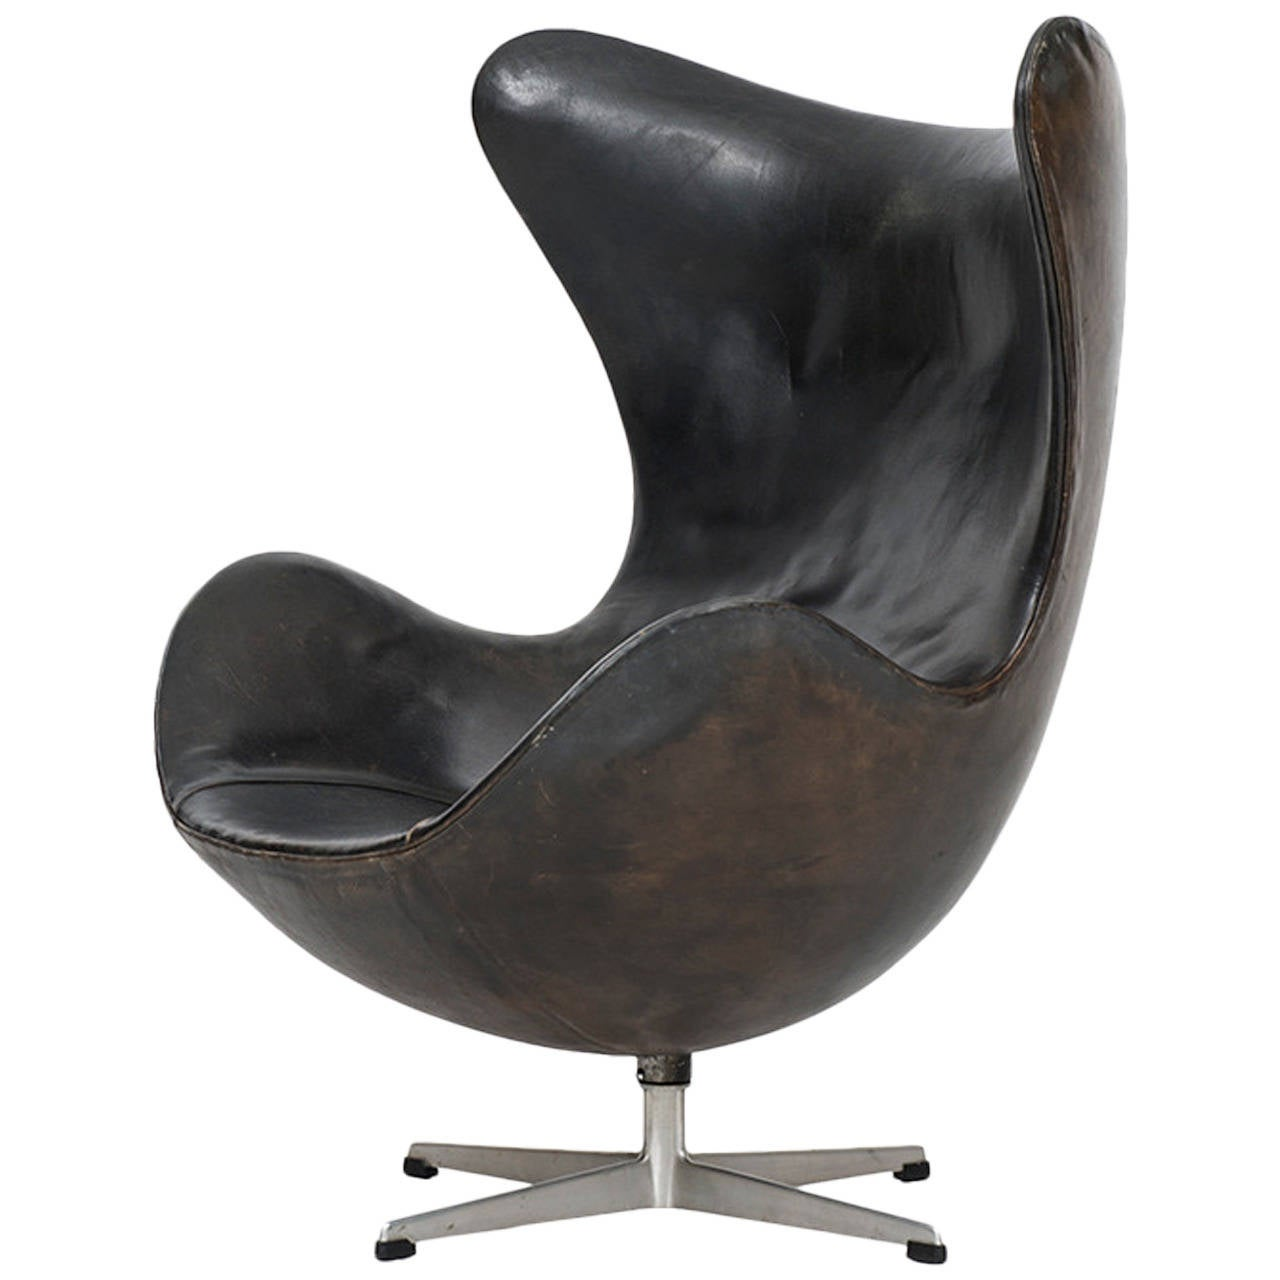 Arne jacobsen early egg chair in original black leather by for Egg chair original